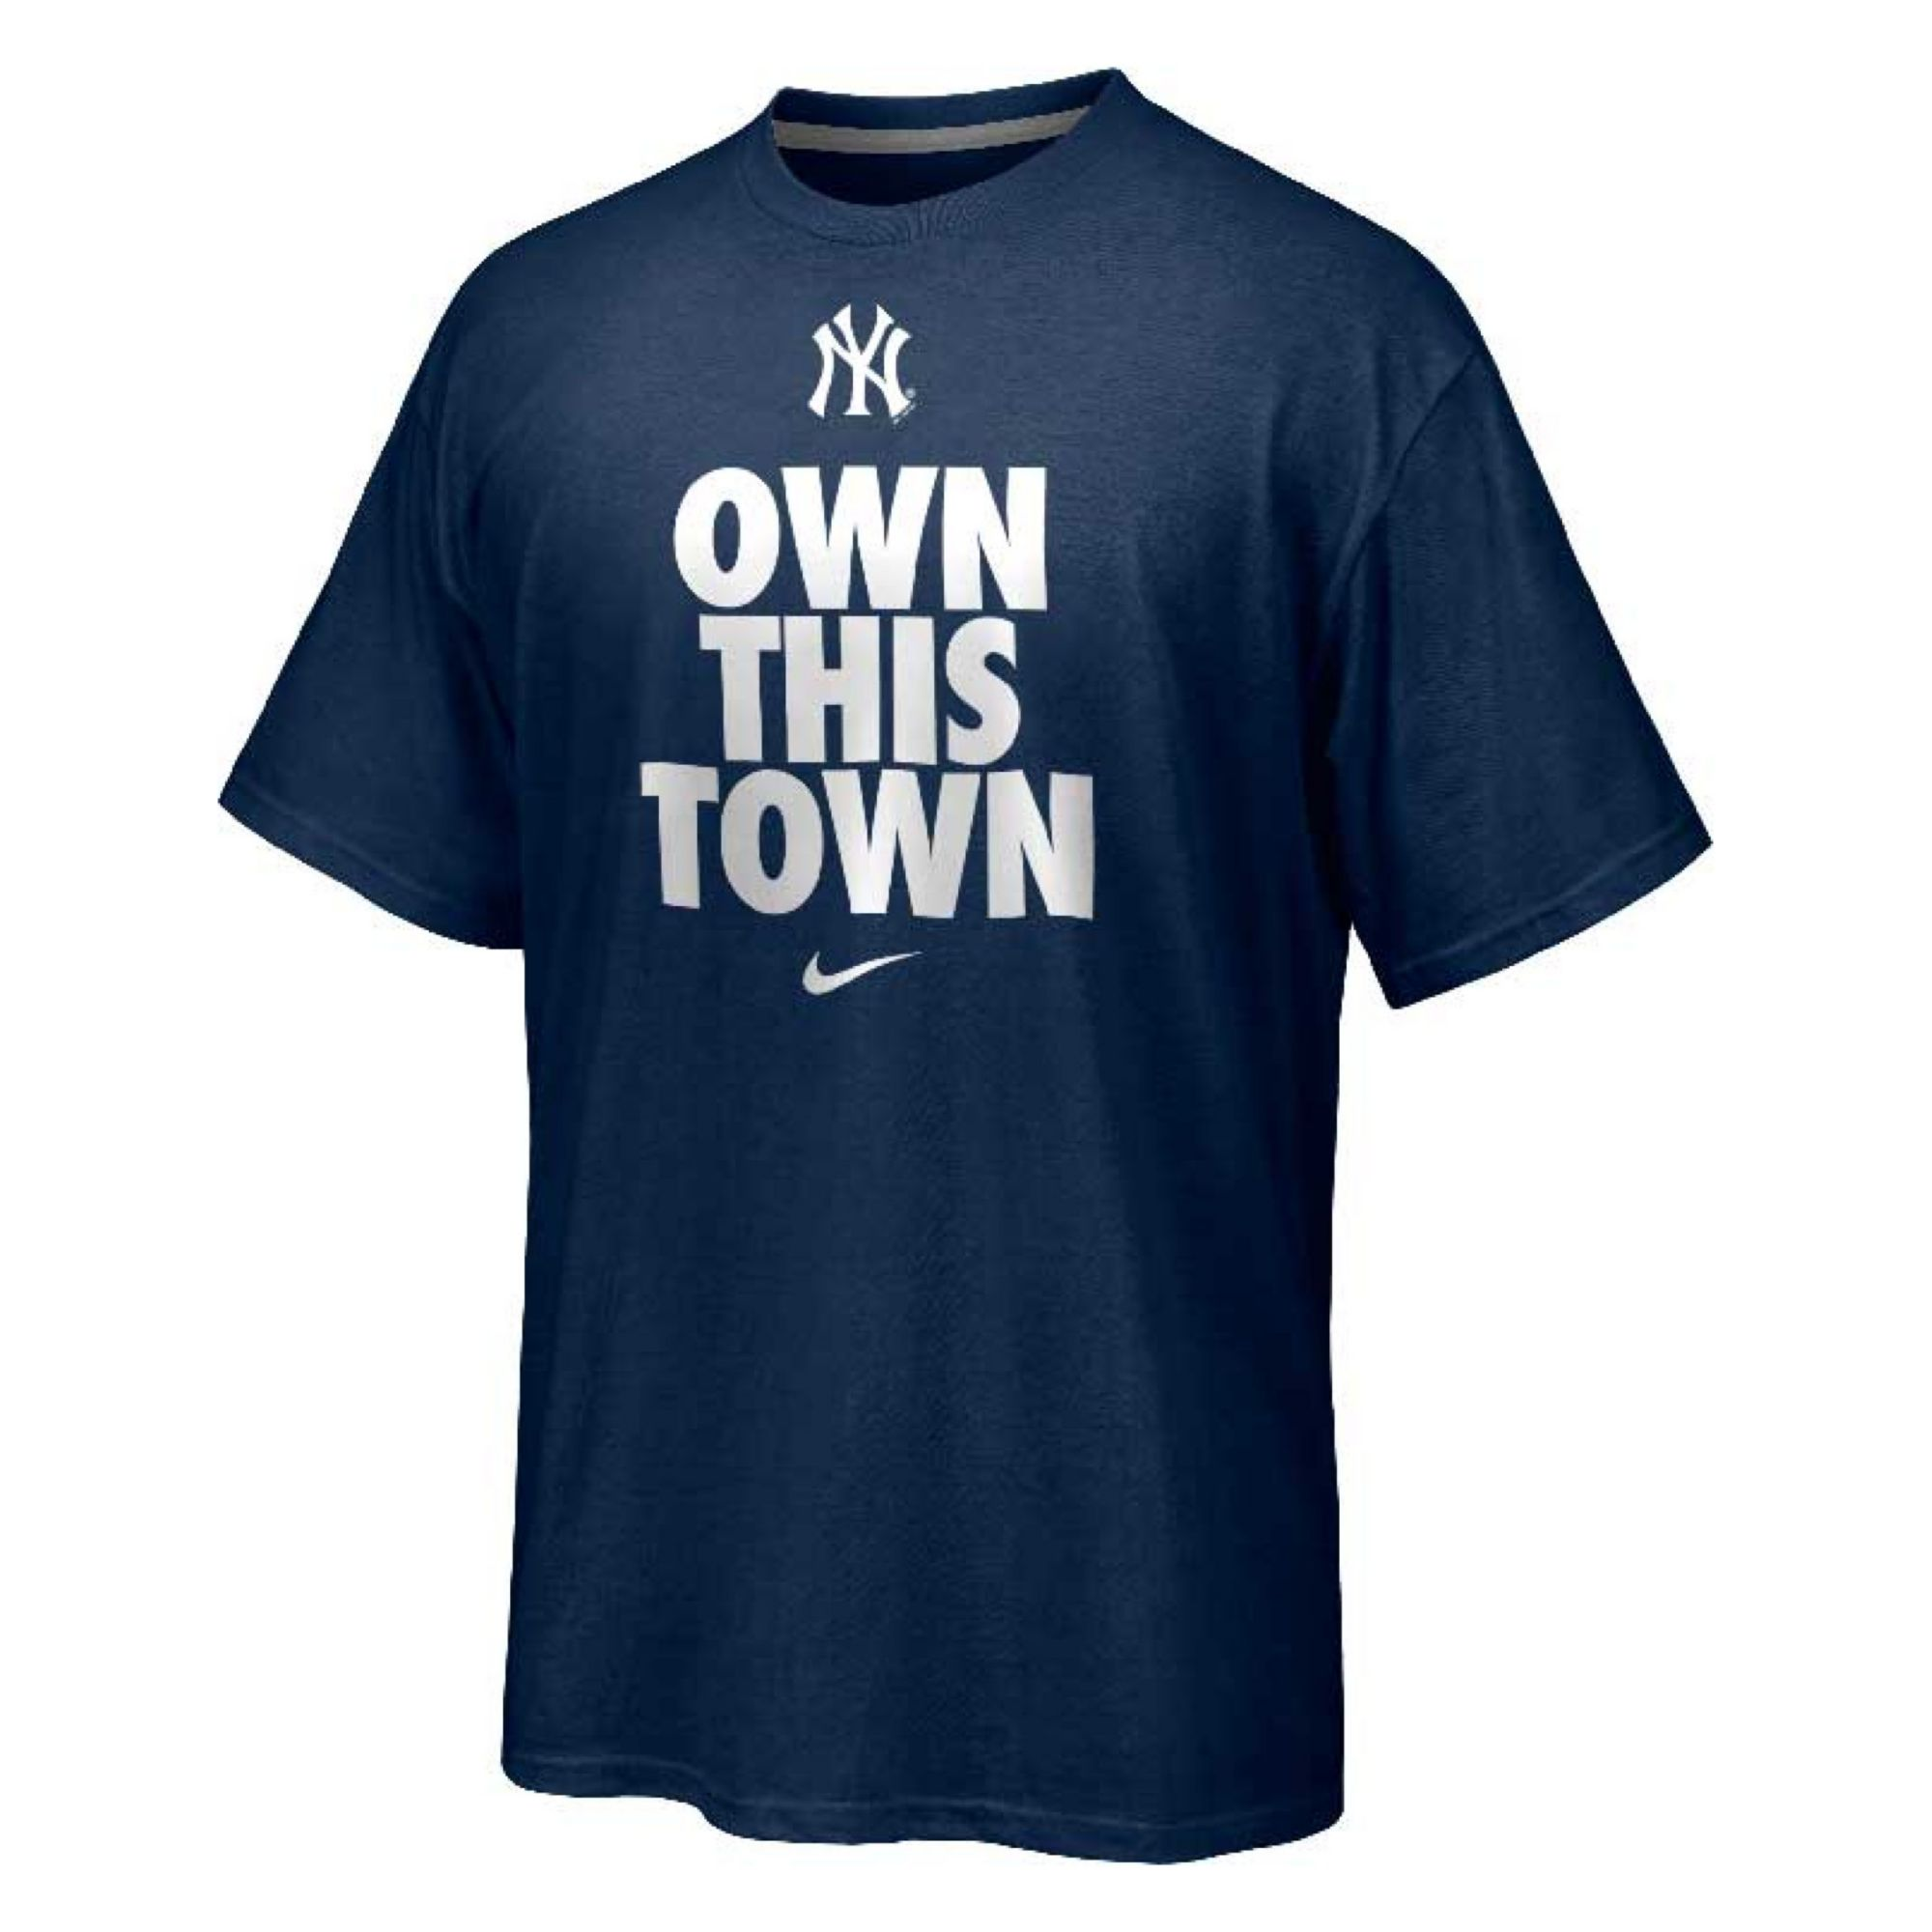 Nike men 39 s short sleeve new york yankees own this town t for Lands end logo shirts